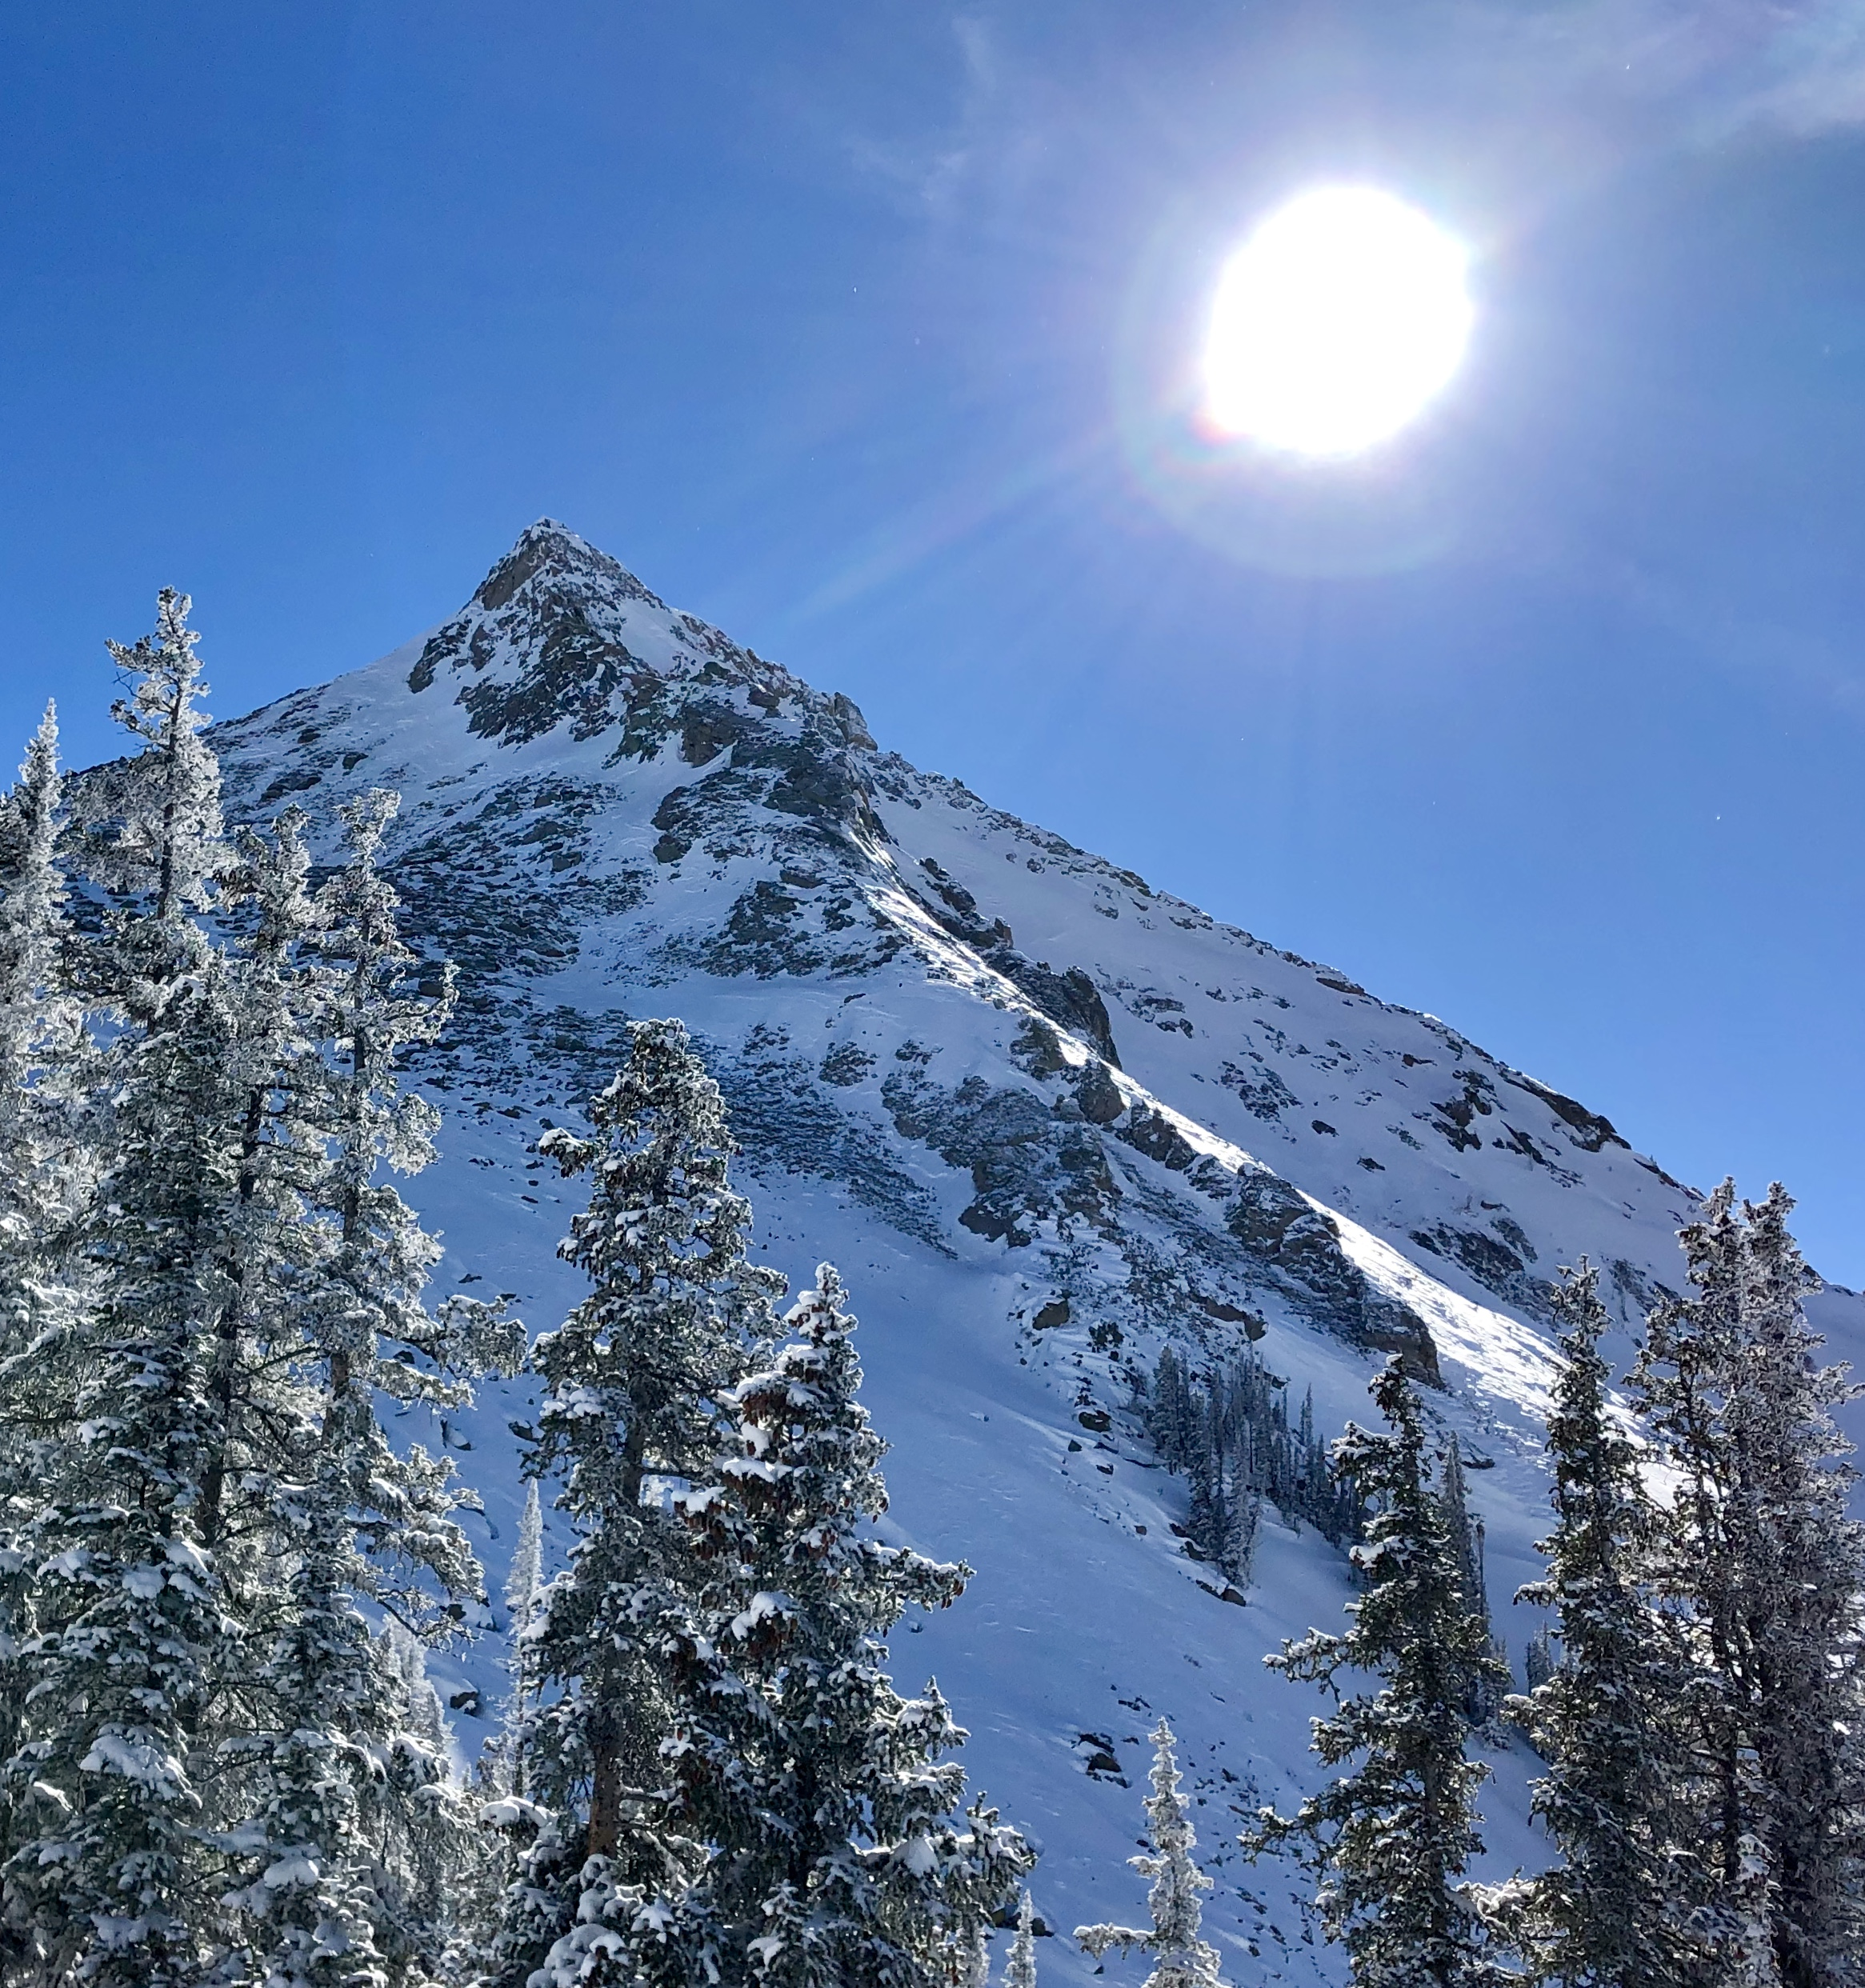 Mount Crested Butte and Engelmann Spruce near it's summit. Partnering with the US Forest Service the Vegetation Management Plan was created to maximize ecological vitality and resiliency of forests within the ski area boundaries.